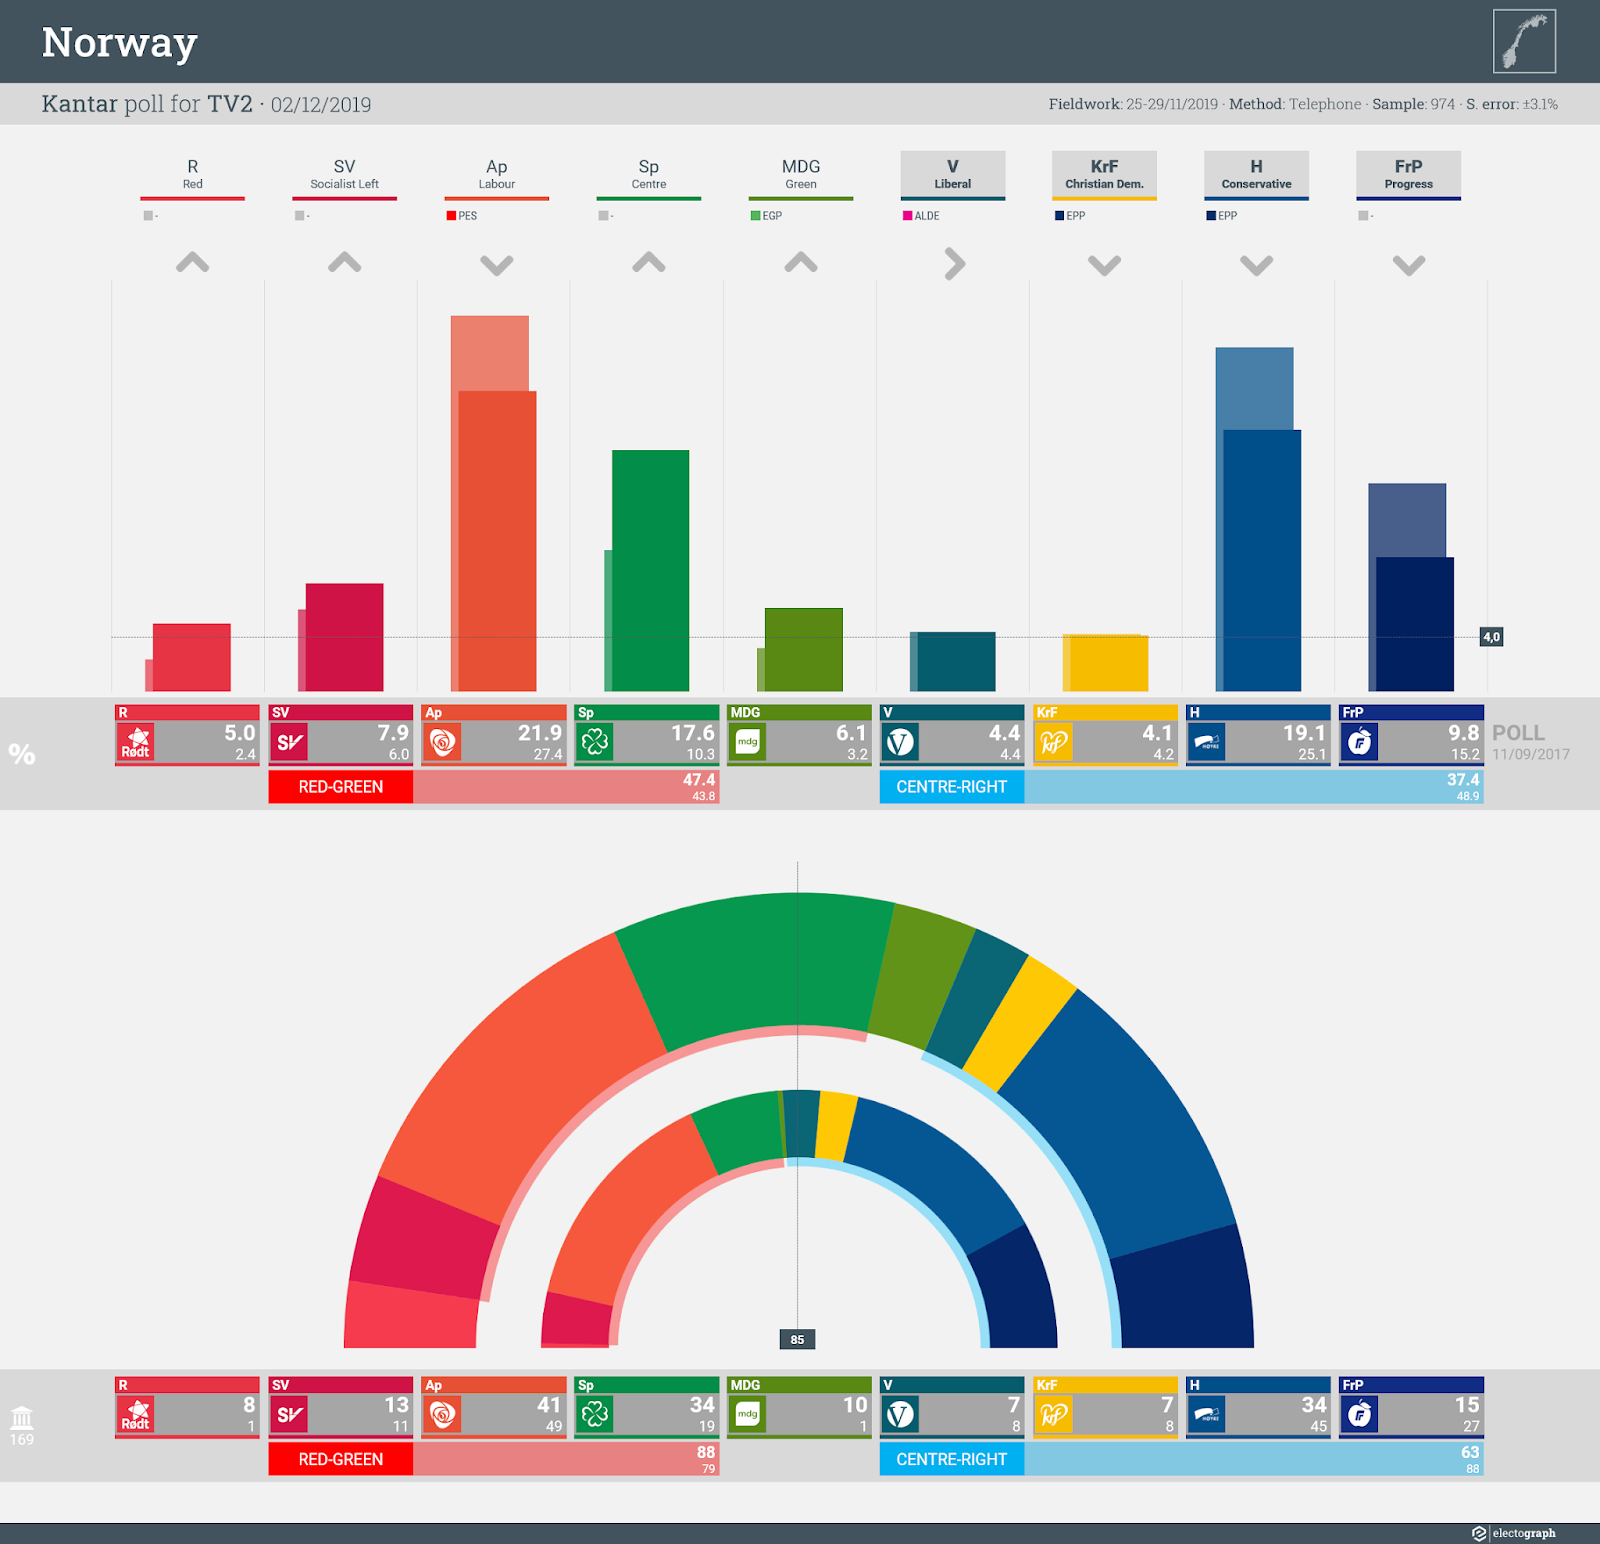 NORWAY: Kantar poll chart for TV2, 2 December 2019